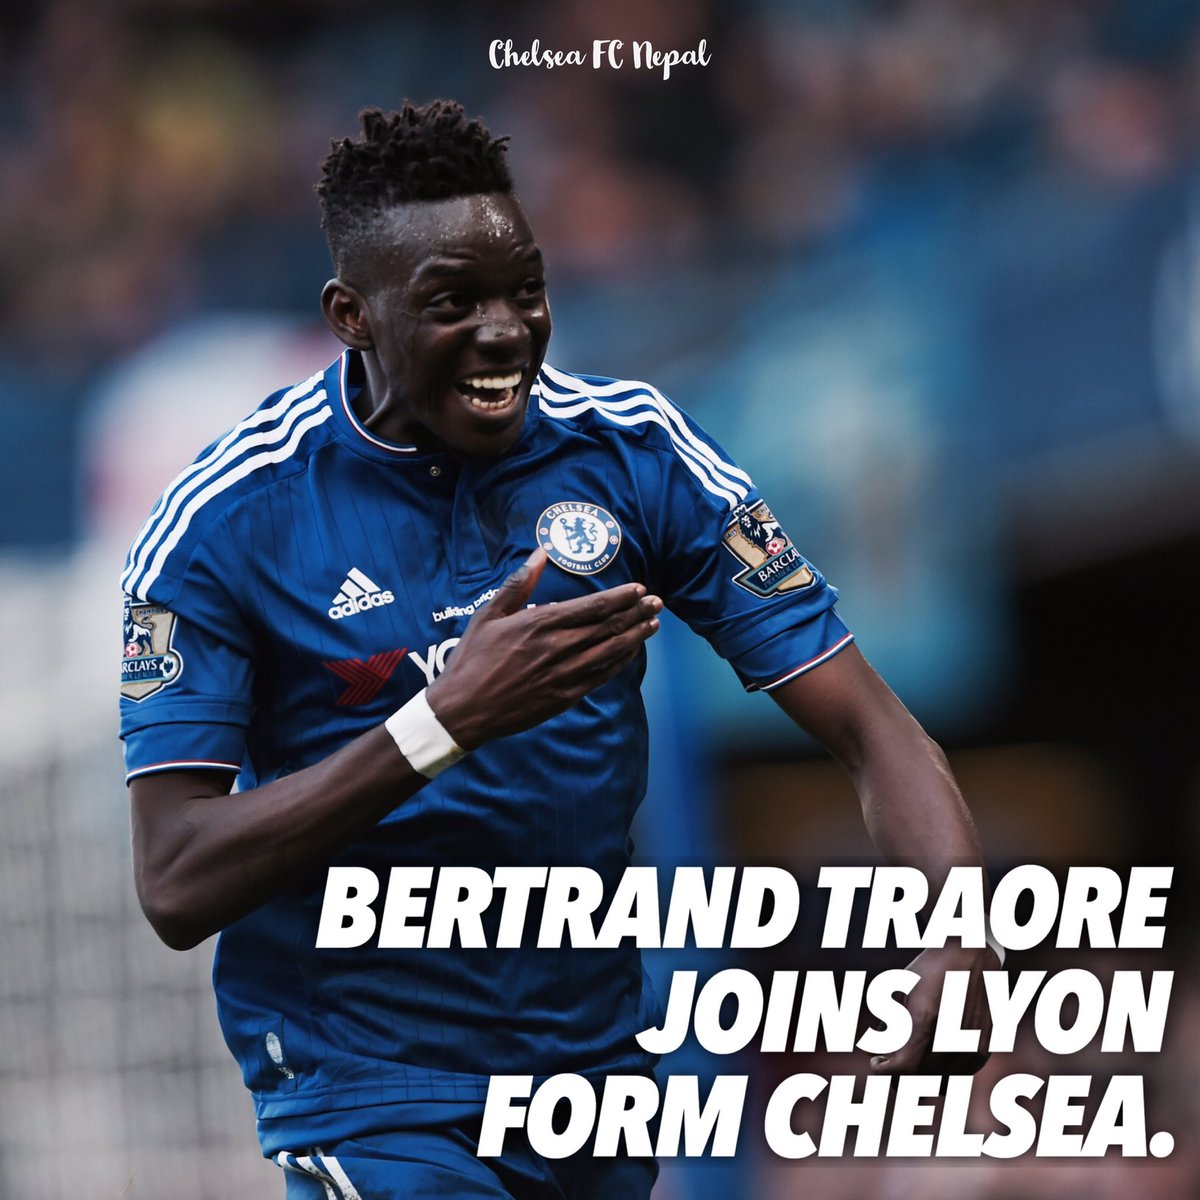 Bertrand Traore has officially completed a move to Ligue 1 giants Lyon, valued at just €10m. #traore #lyon #chelsea #cfc<br>http://pic.twitter.com/uj46pKeyCz